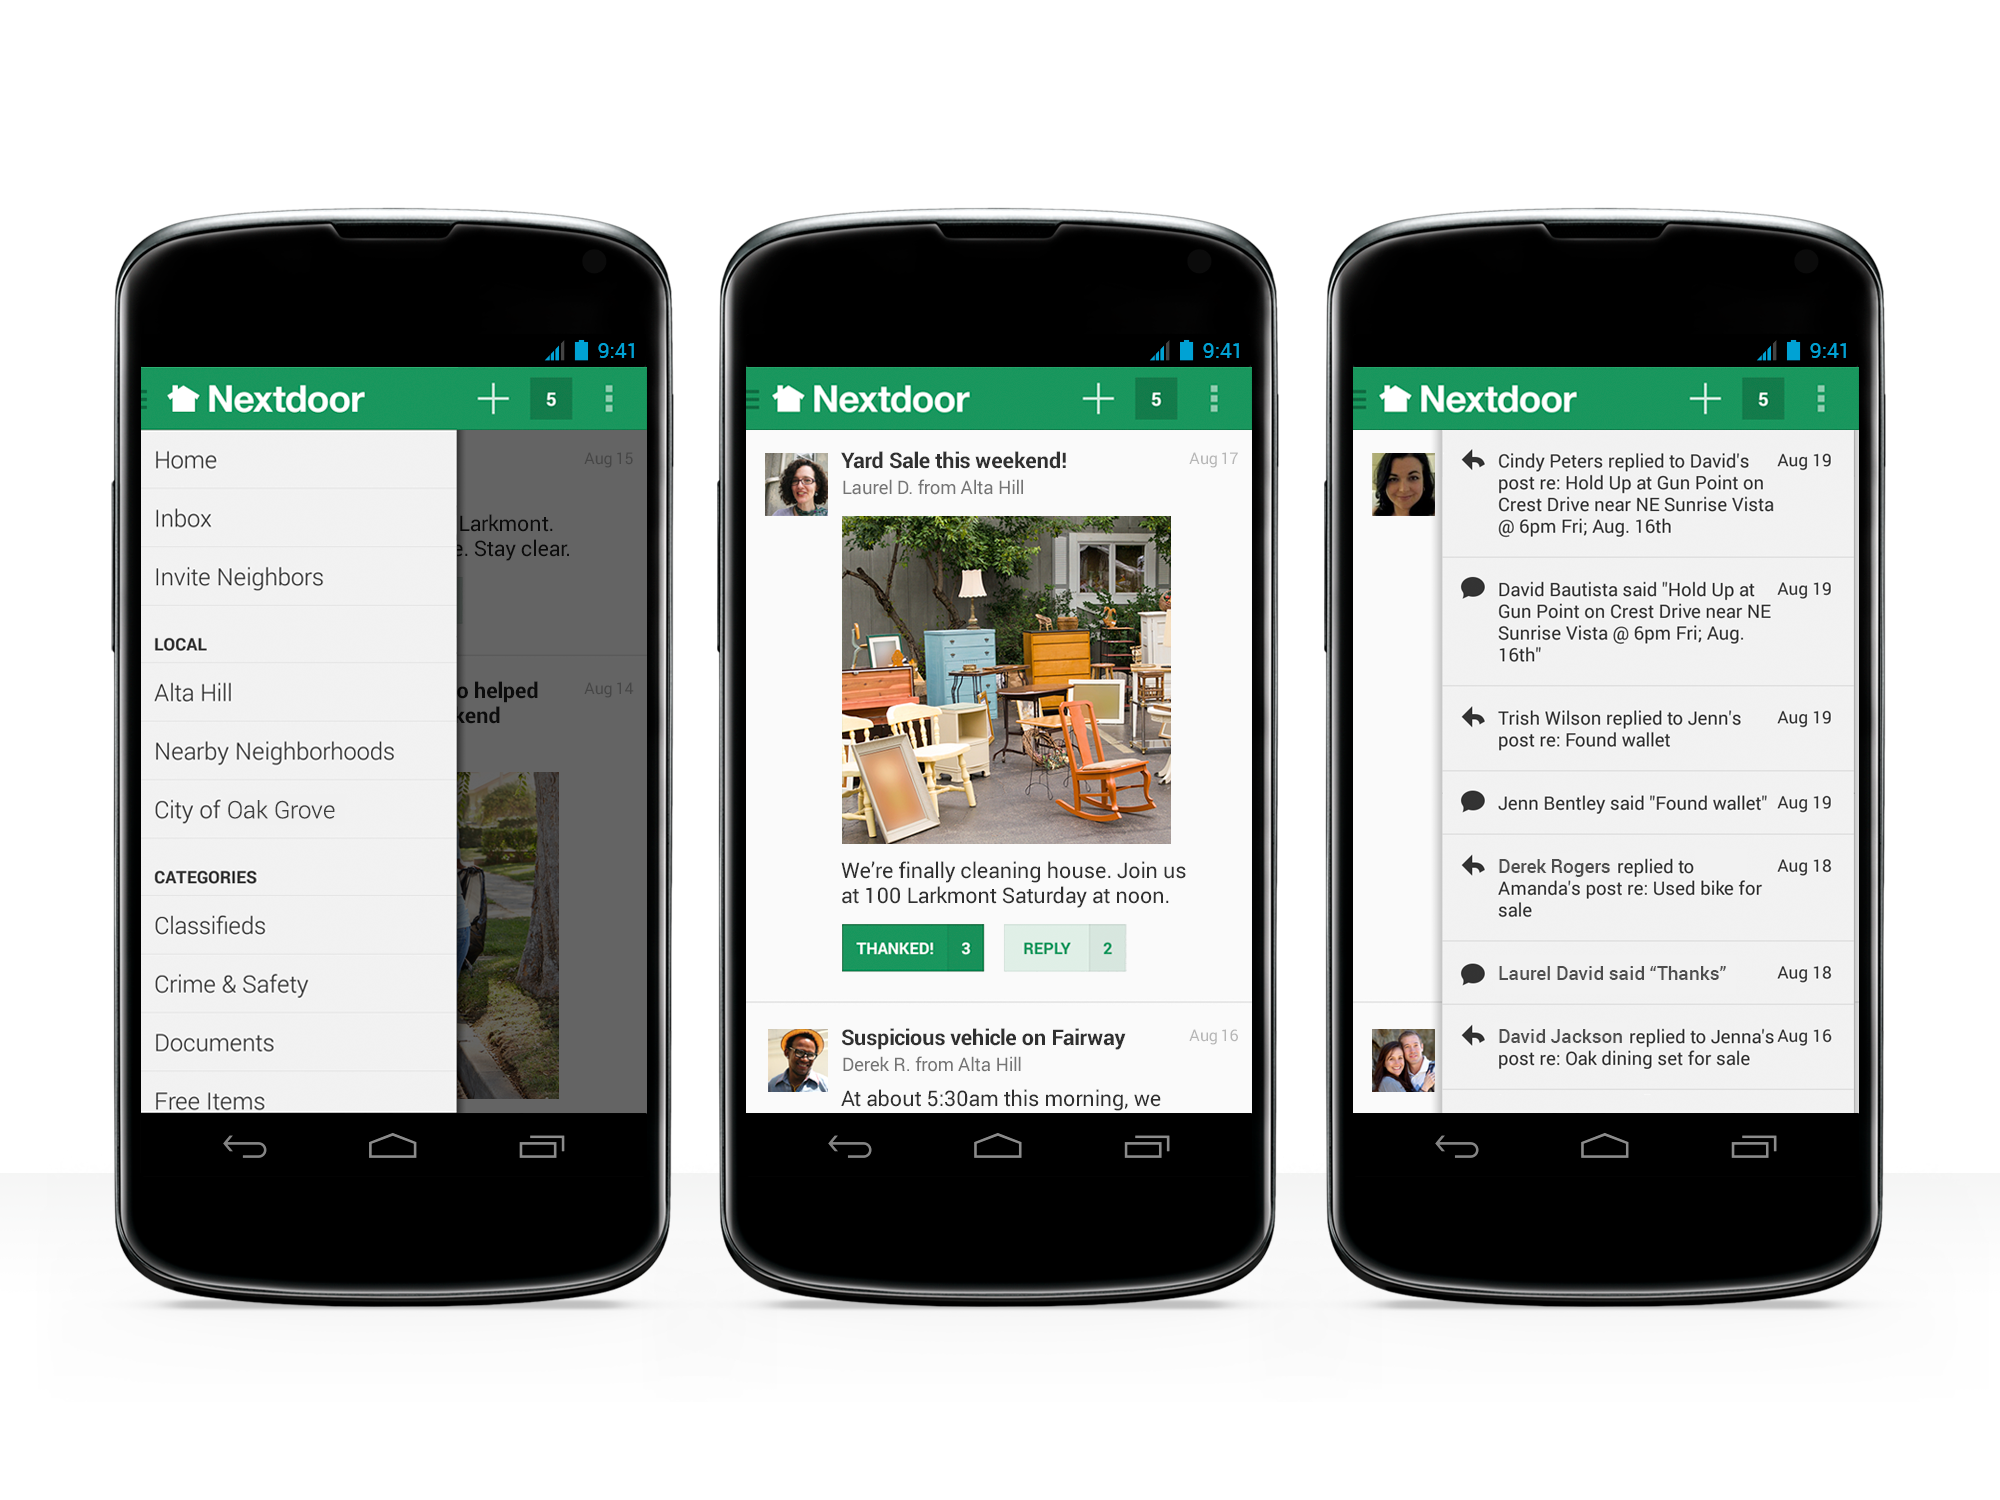 L.A. prosecutors to use Nextdoor app to strengthen ties with residents